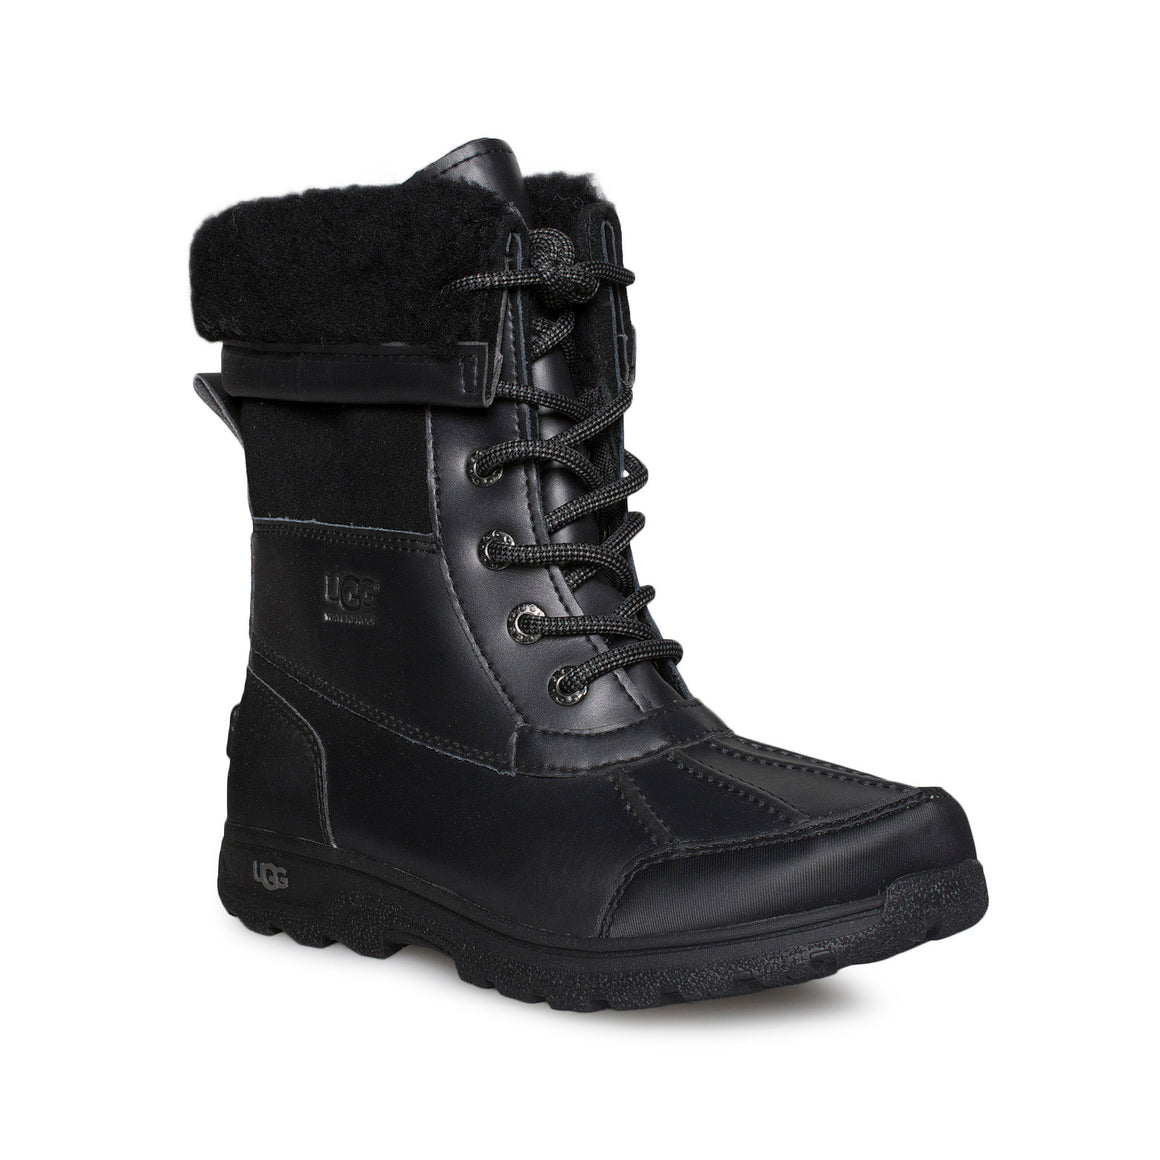 UGG Butte II Black Boots - Youth